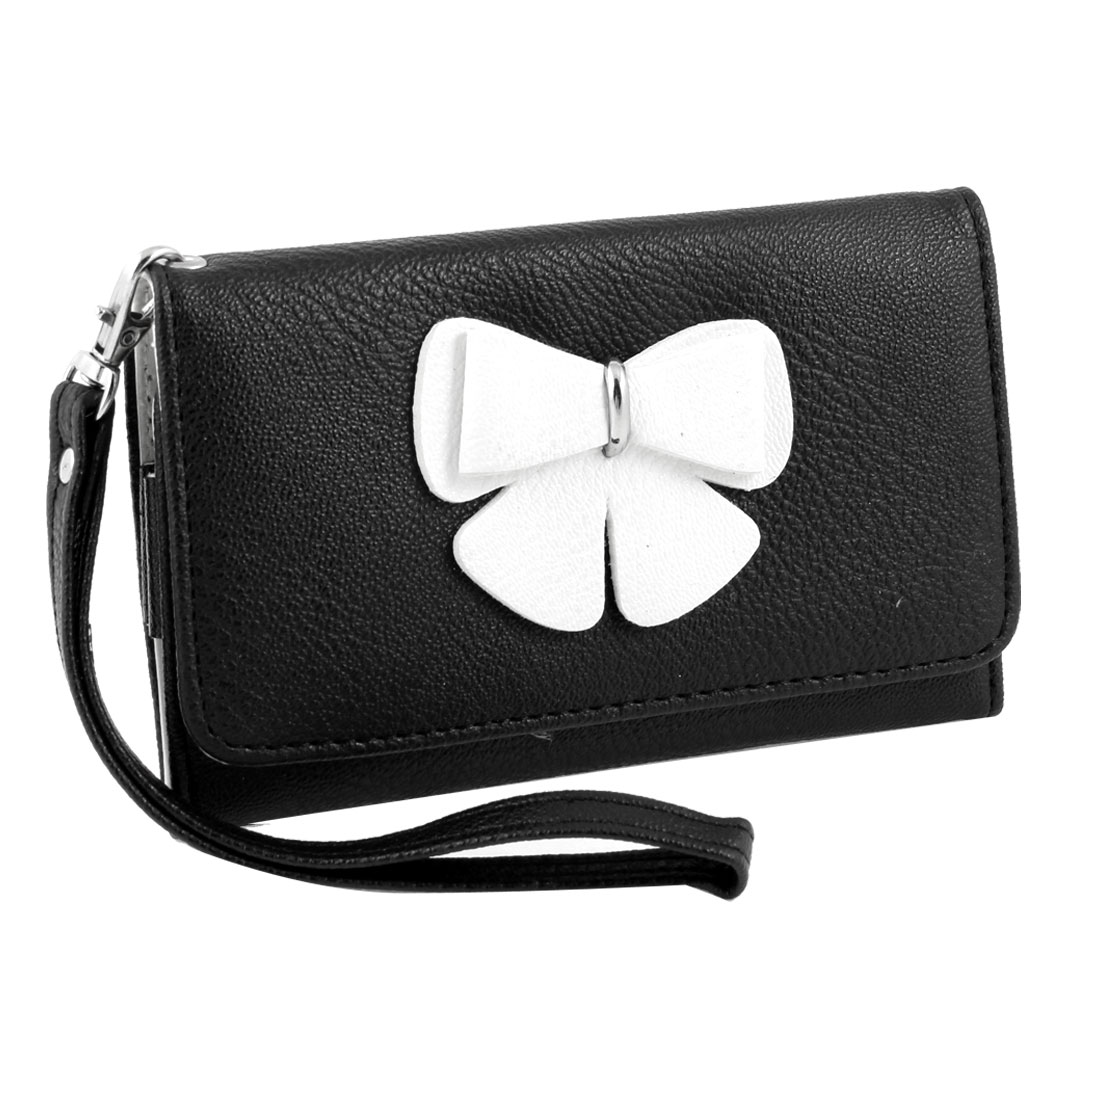 Woman Lady Bowtie Decor Black Rectangle Wristlet Coin Purse Phone Holder